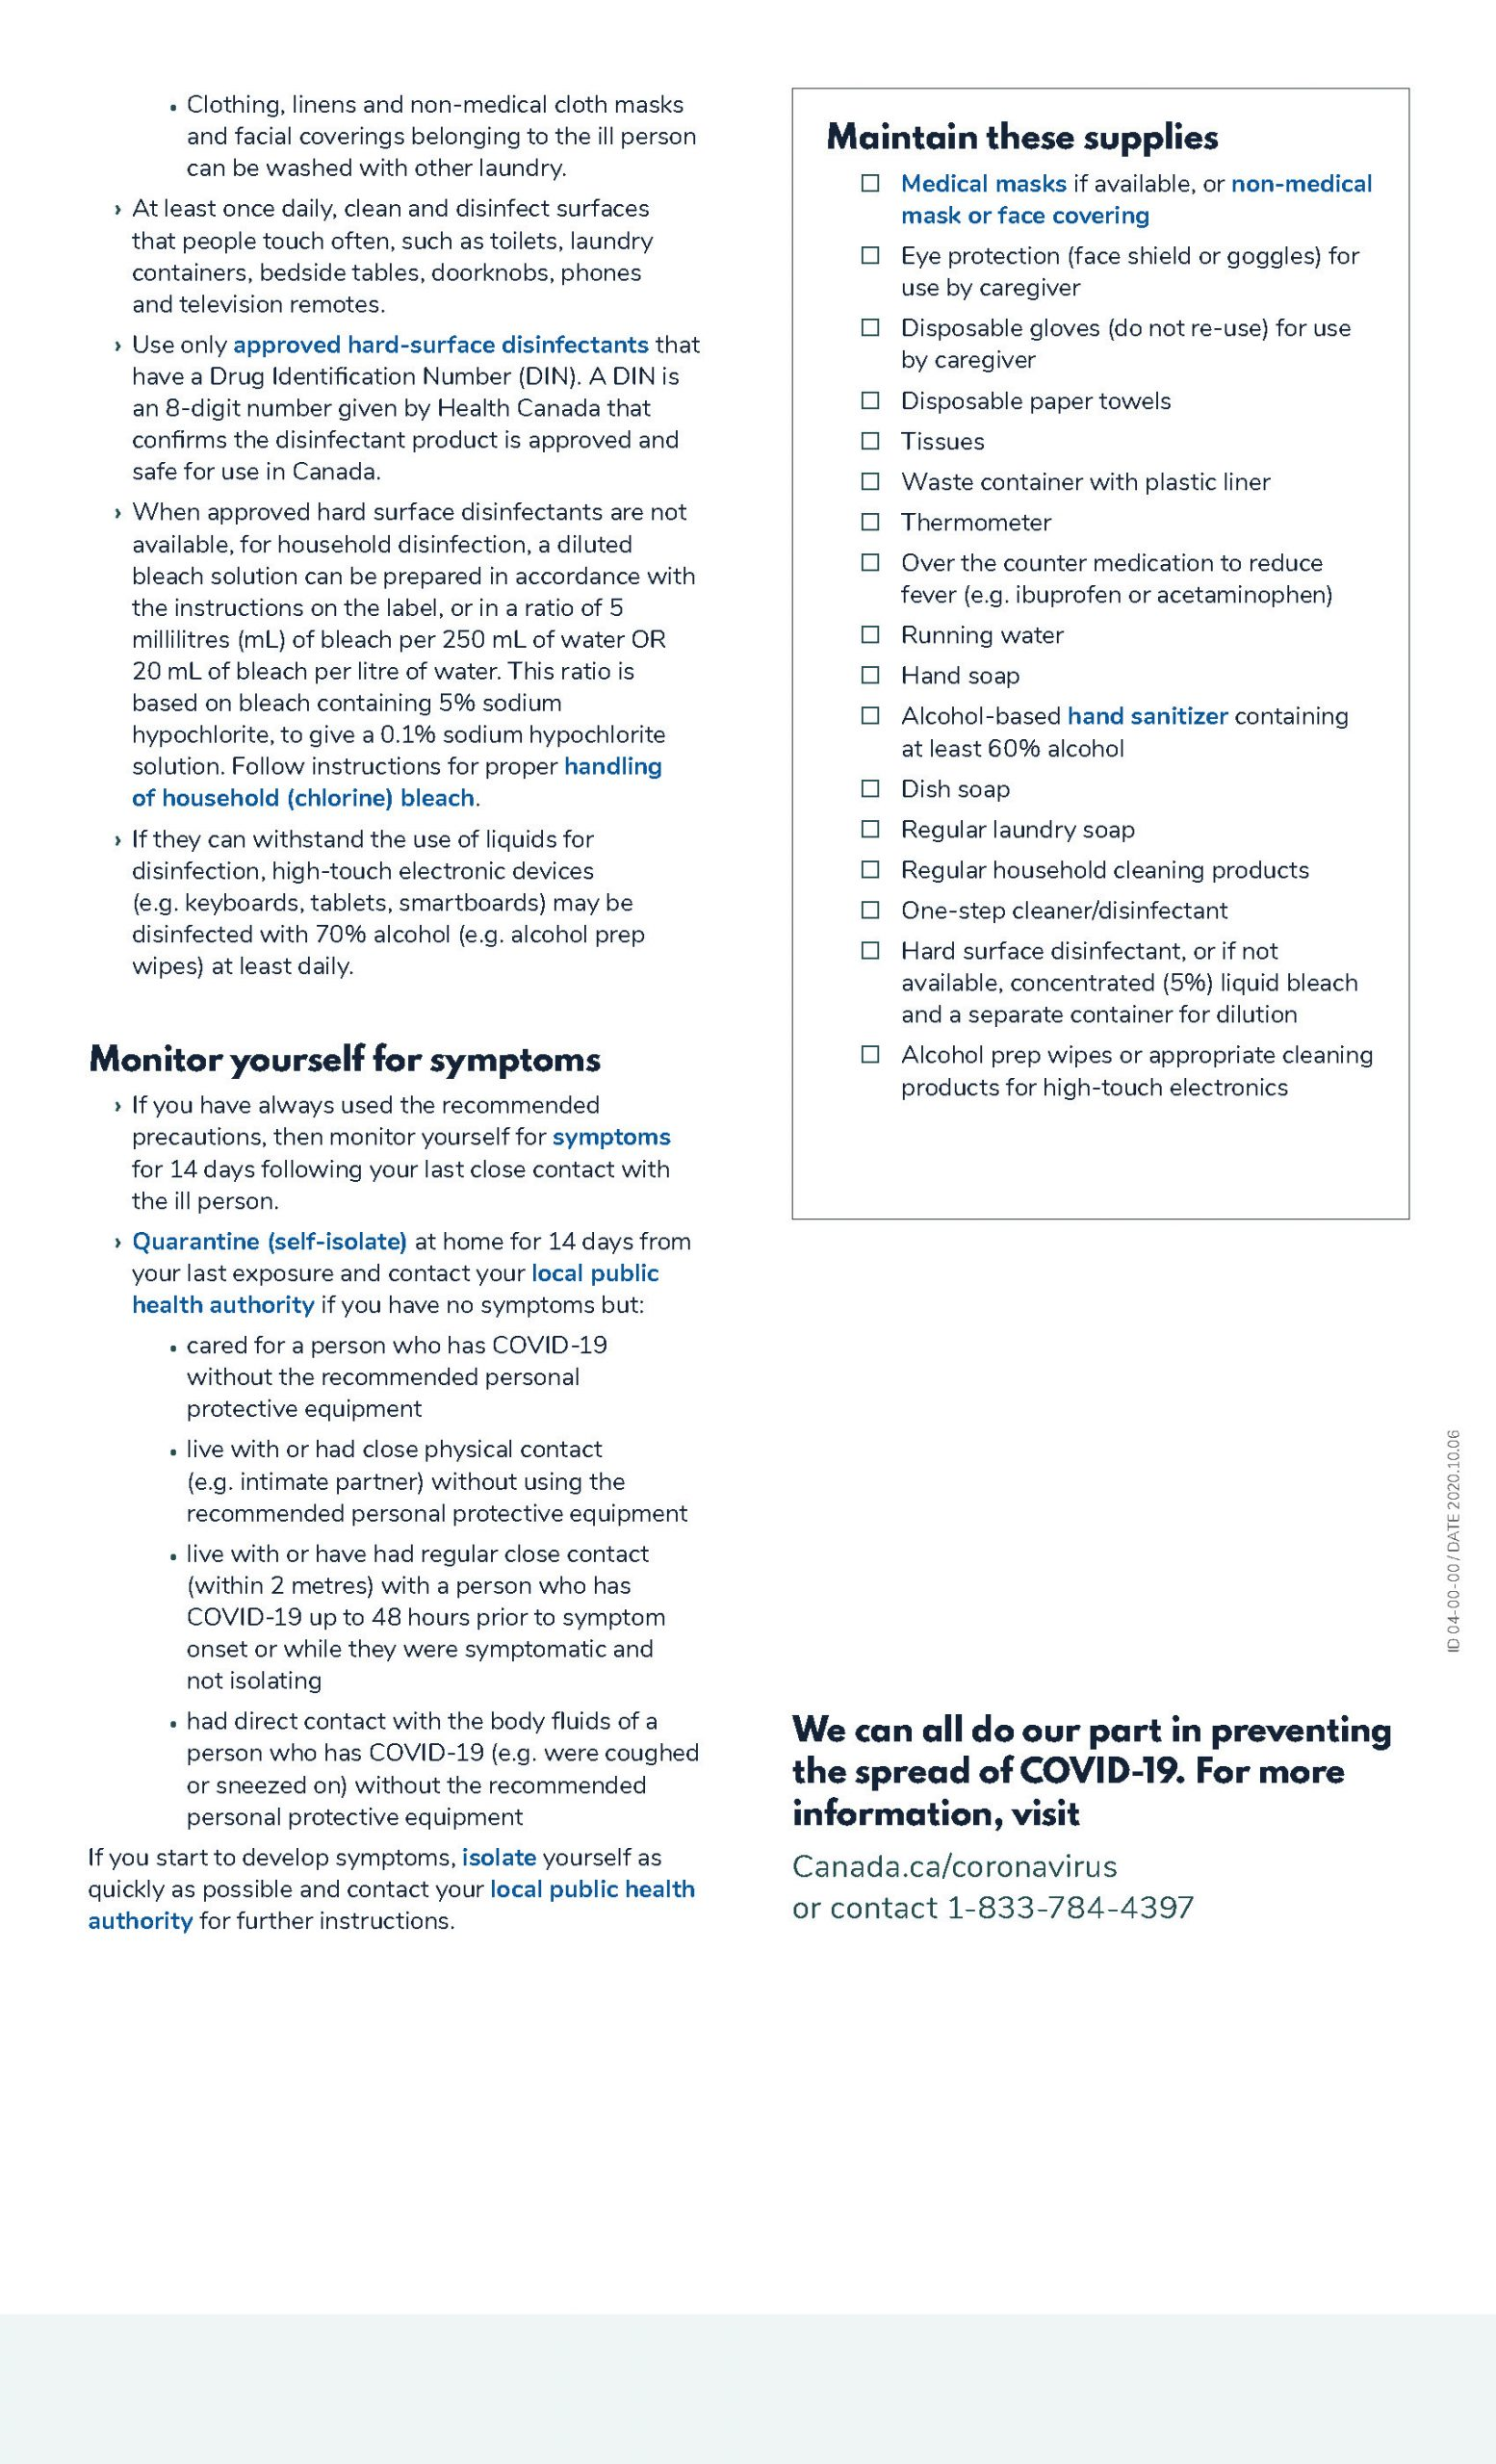 How to Care for a Person with COVID-19 - Page 2